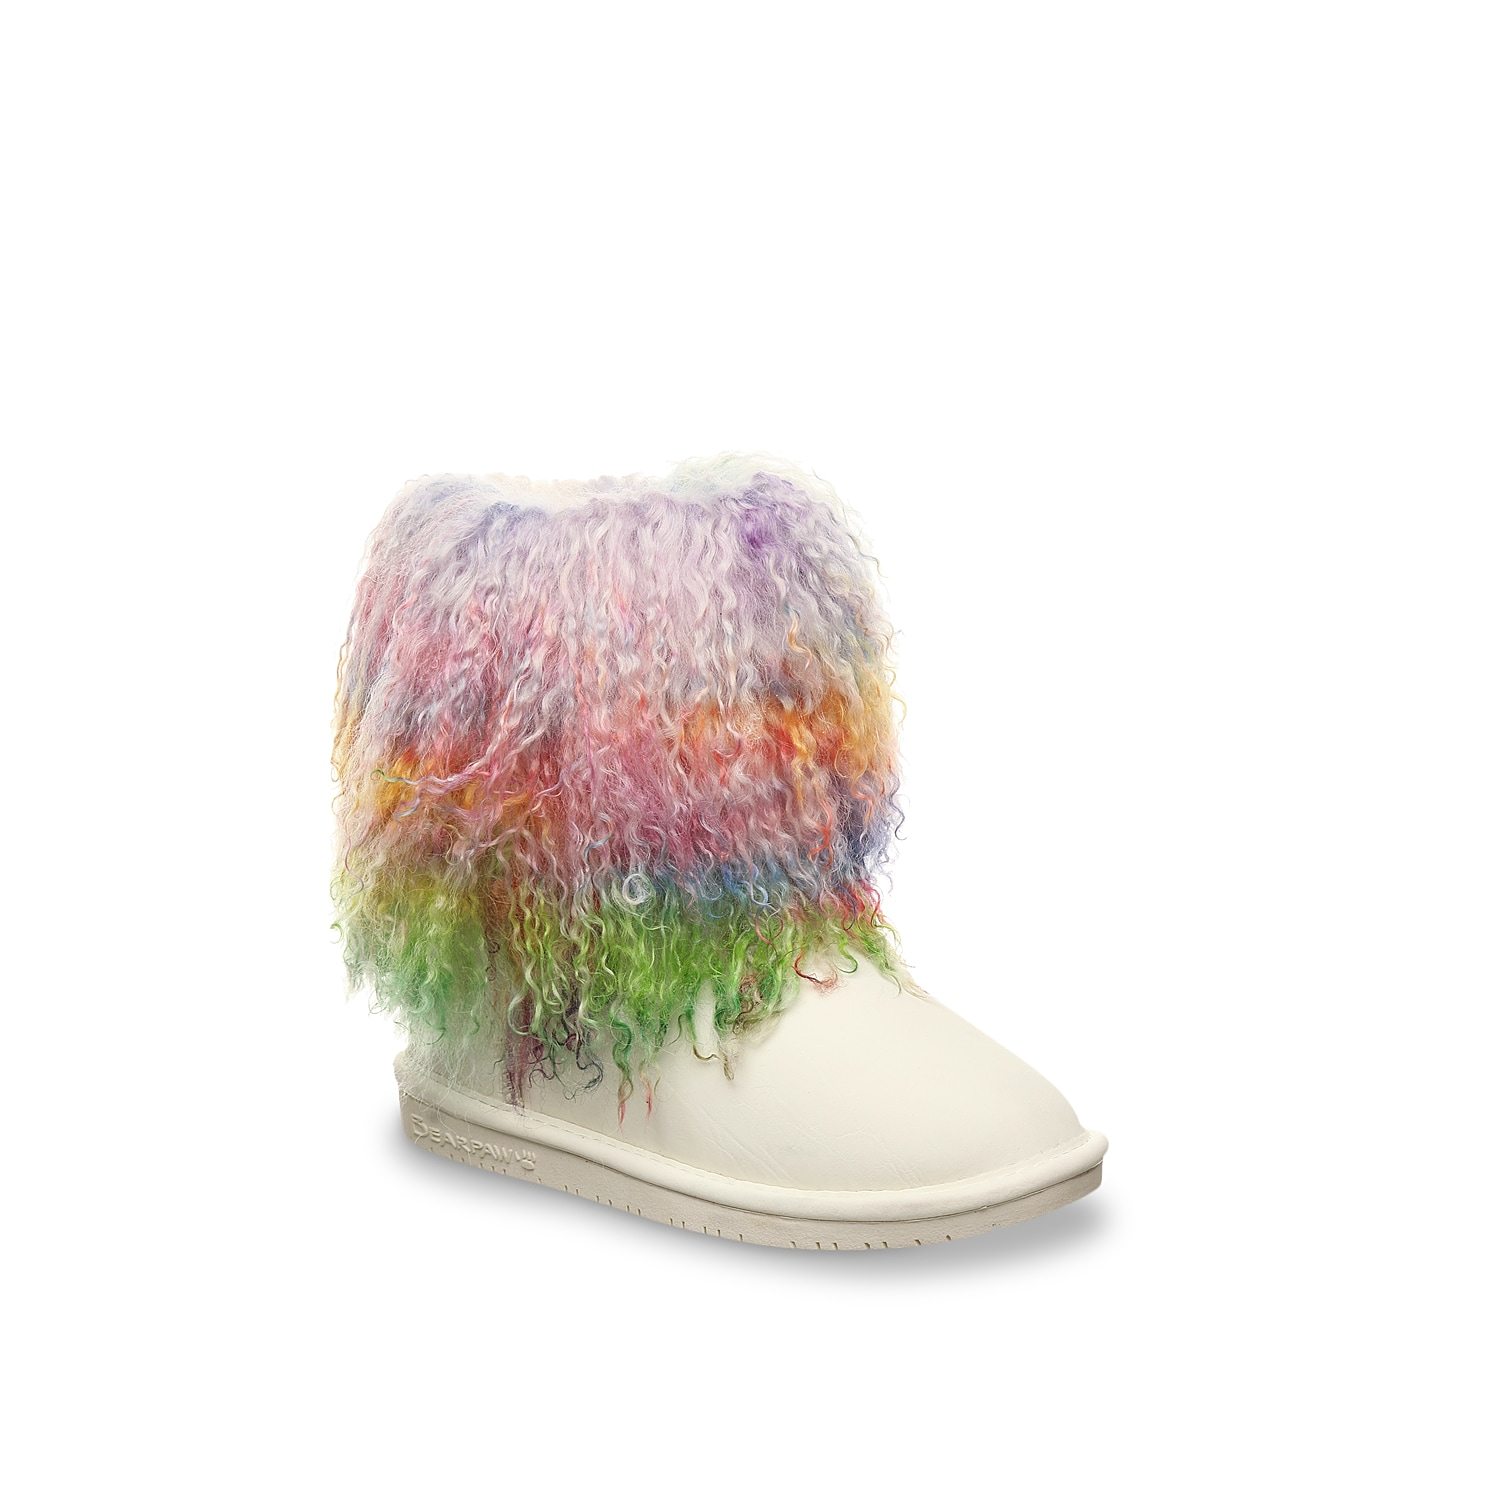 Start her standout style early with the Boo boot from Bearpaw. These suede boots are lined with wool and feature a lamb hair finish to keep little toes warm and cozy! Click here for Kids Size Guide.